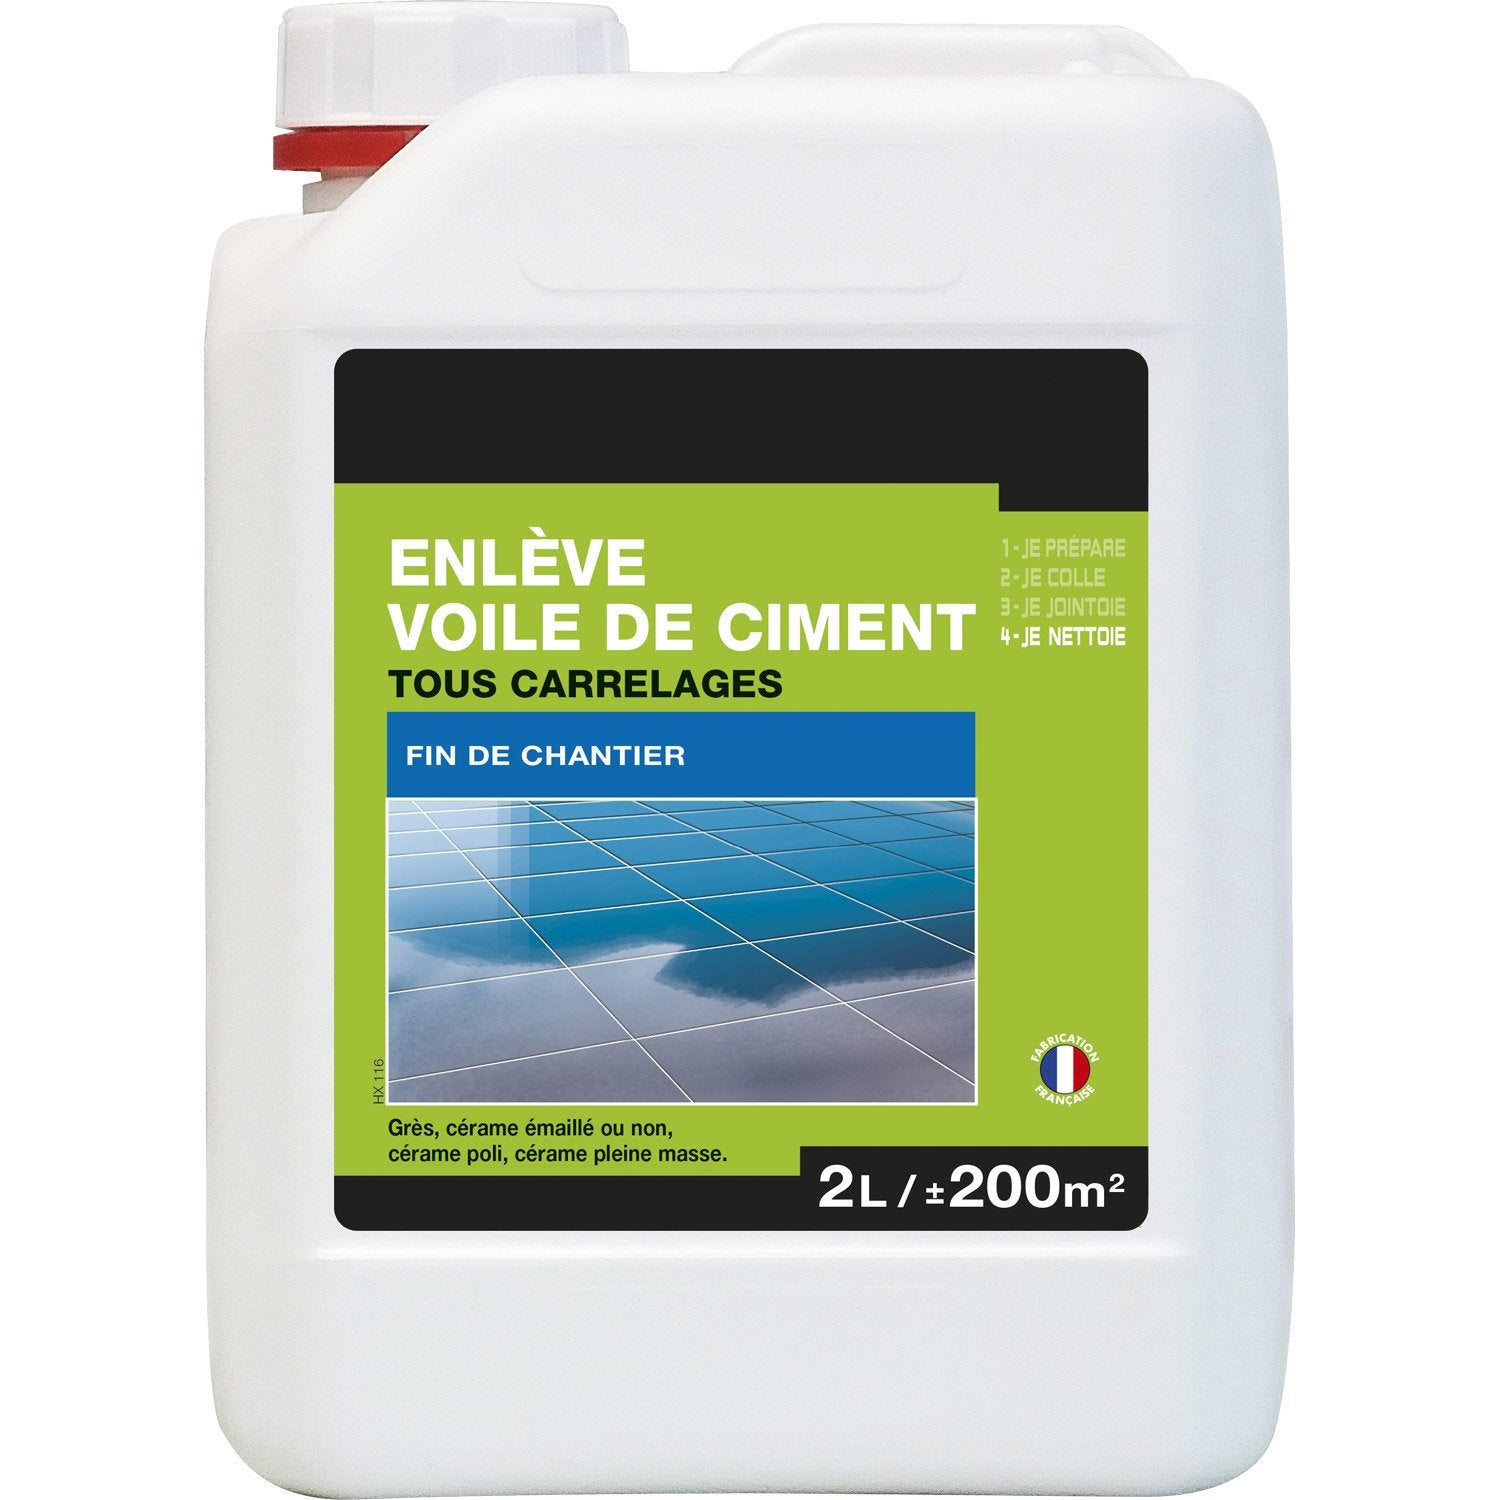 Enl ve voile de ciment tous supports axton 2l leroy merlin for Dosage ciment pour chape carrelage